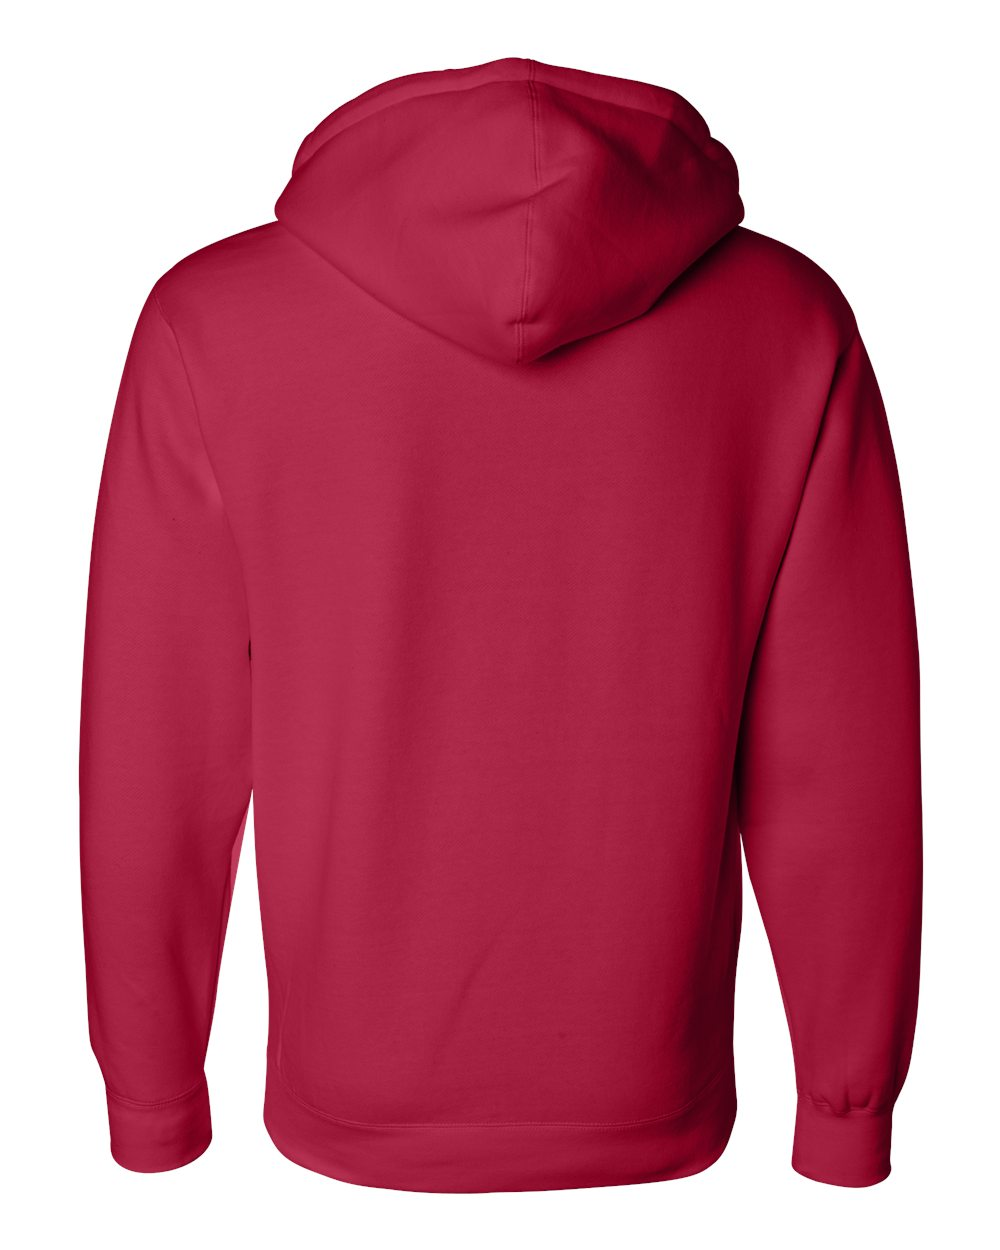 Independent-Trading-Co-Mens-Hooded-Pullover-Sweatshirt-IND4000-up-to-3XL miniature 61